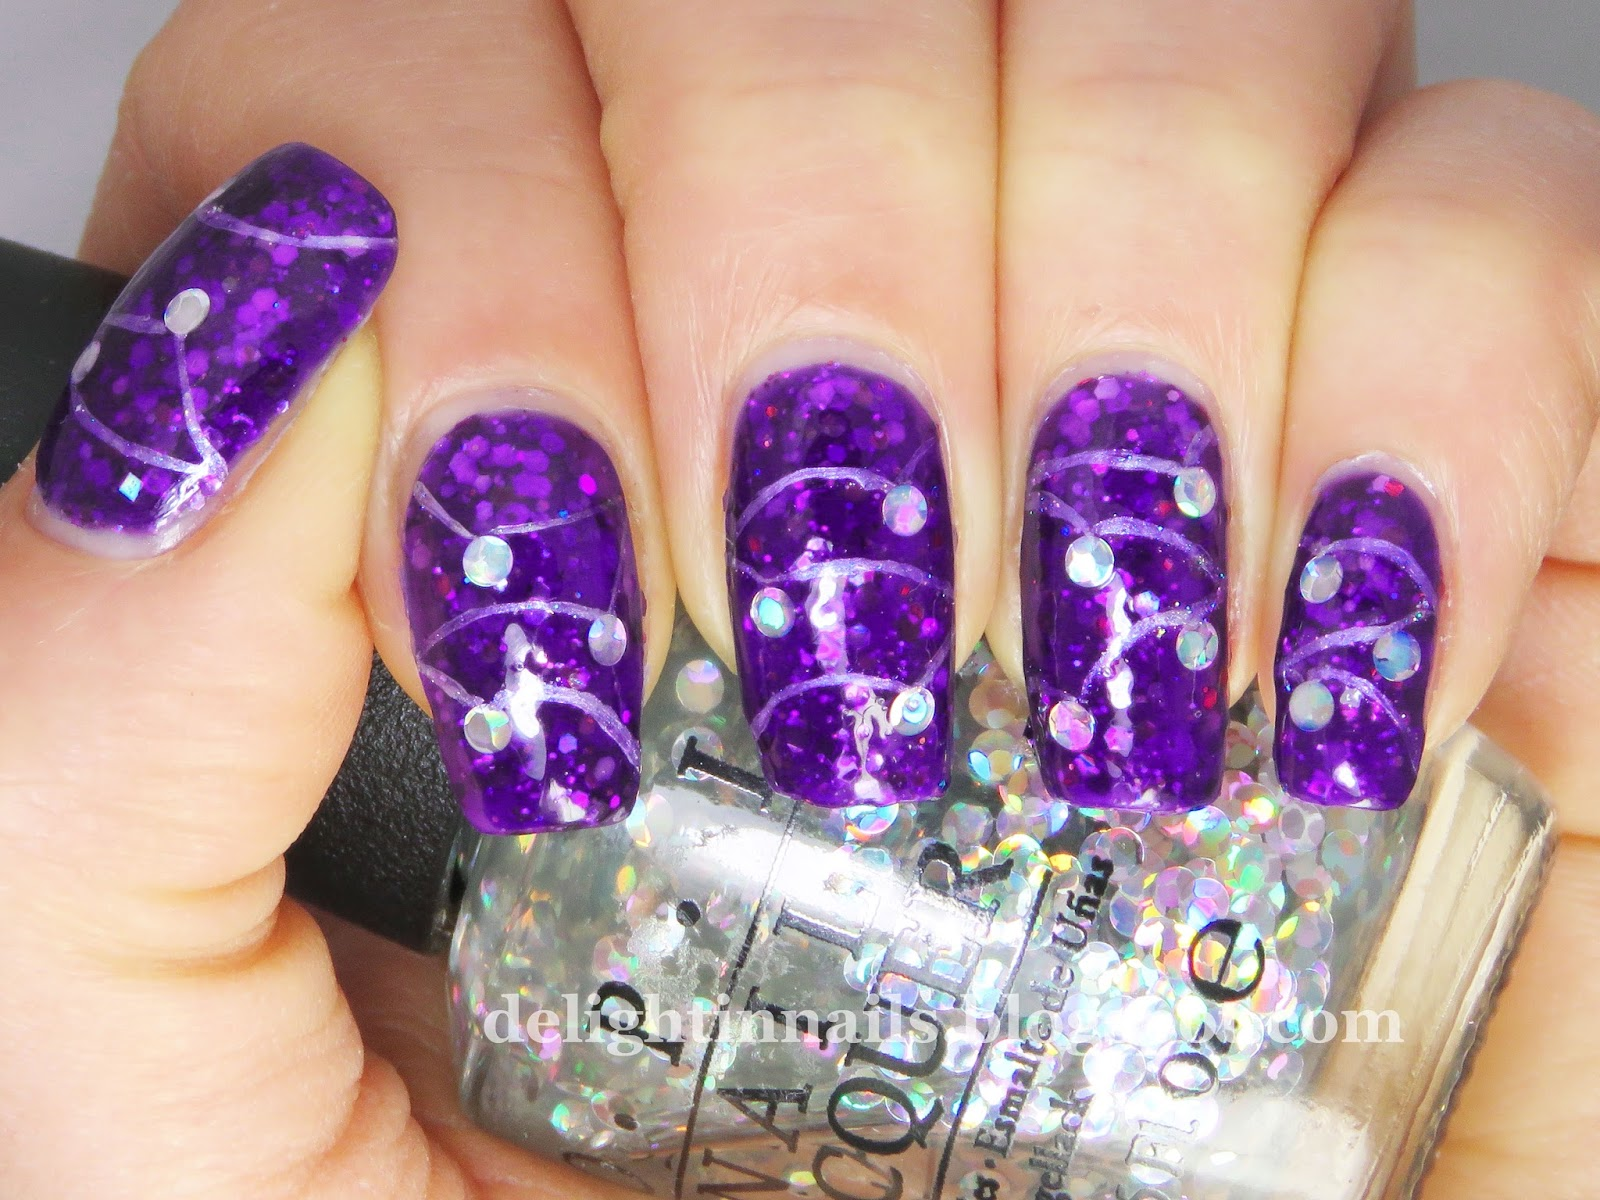 Delight In Nails: 40 Great Nail Art Ideas - New Year